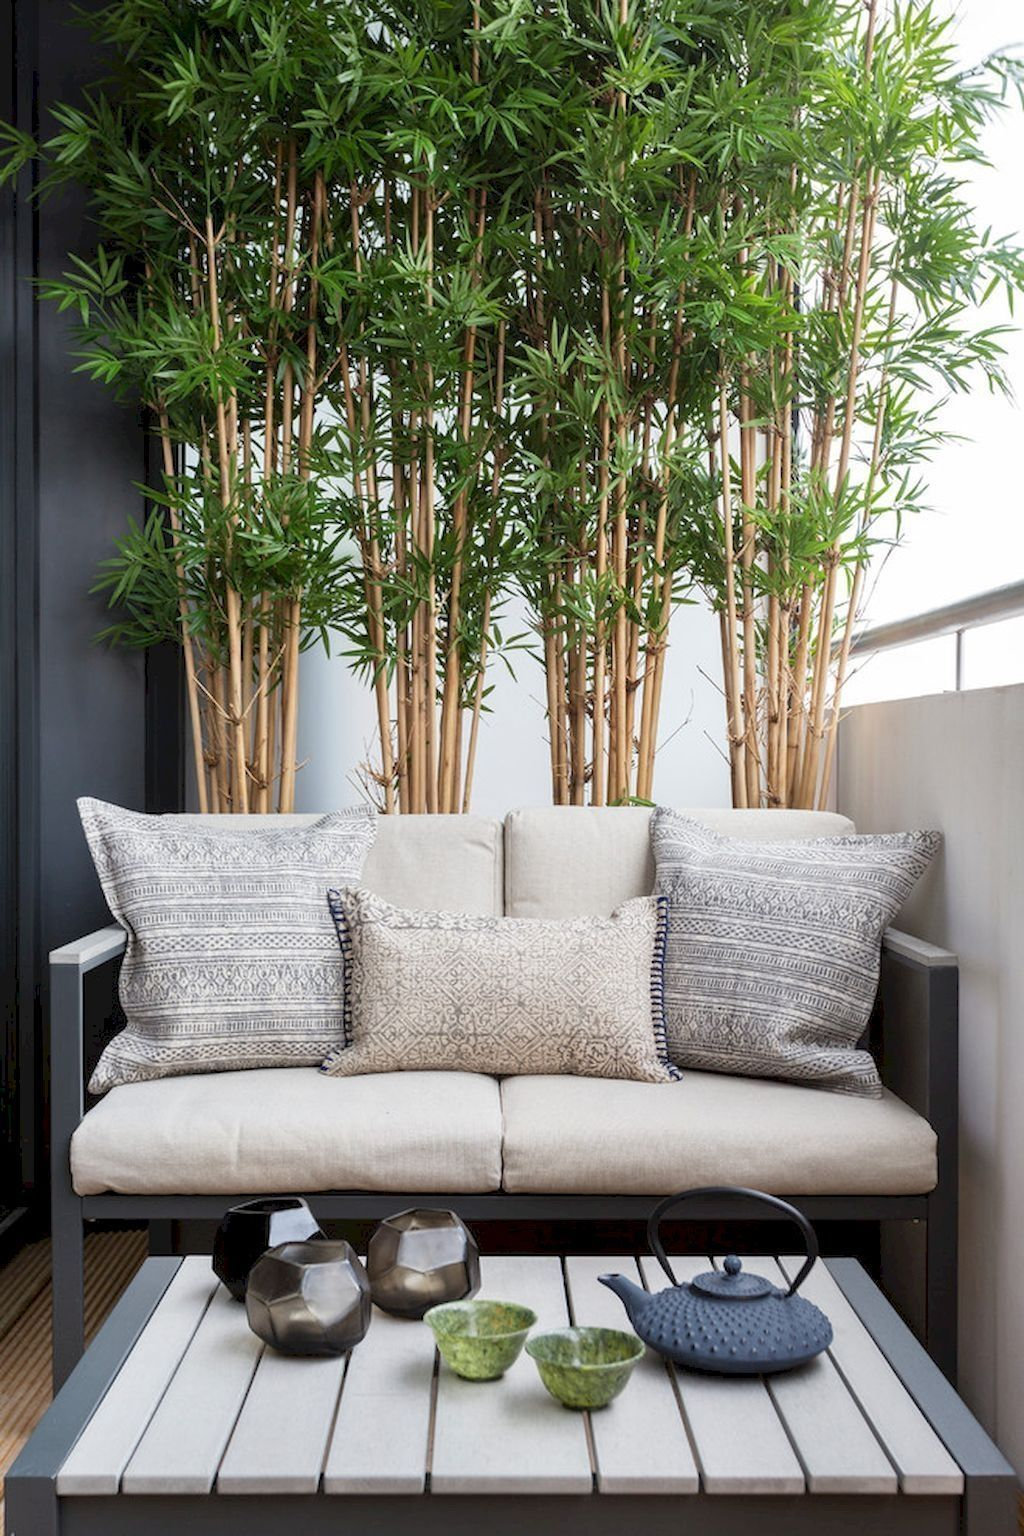 24 Elegant And Cozy Balcony Ideas in 24  Small apartment